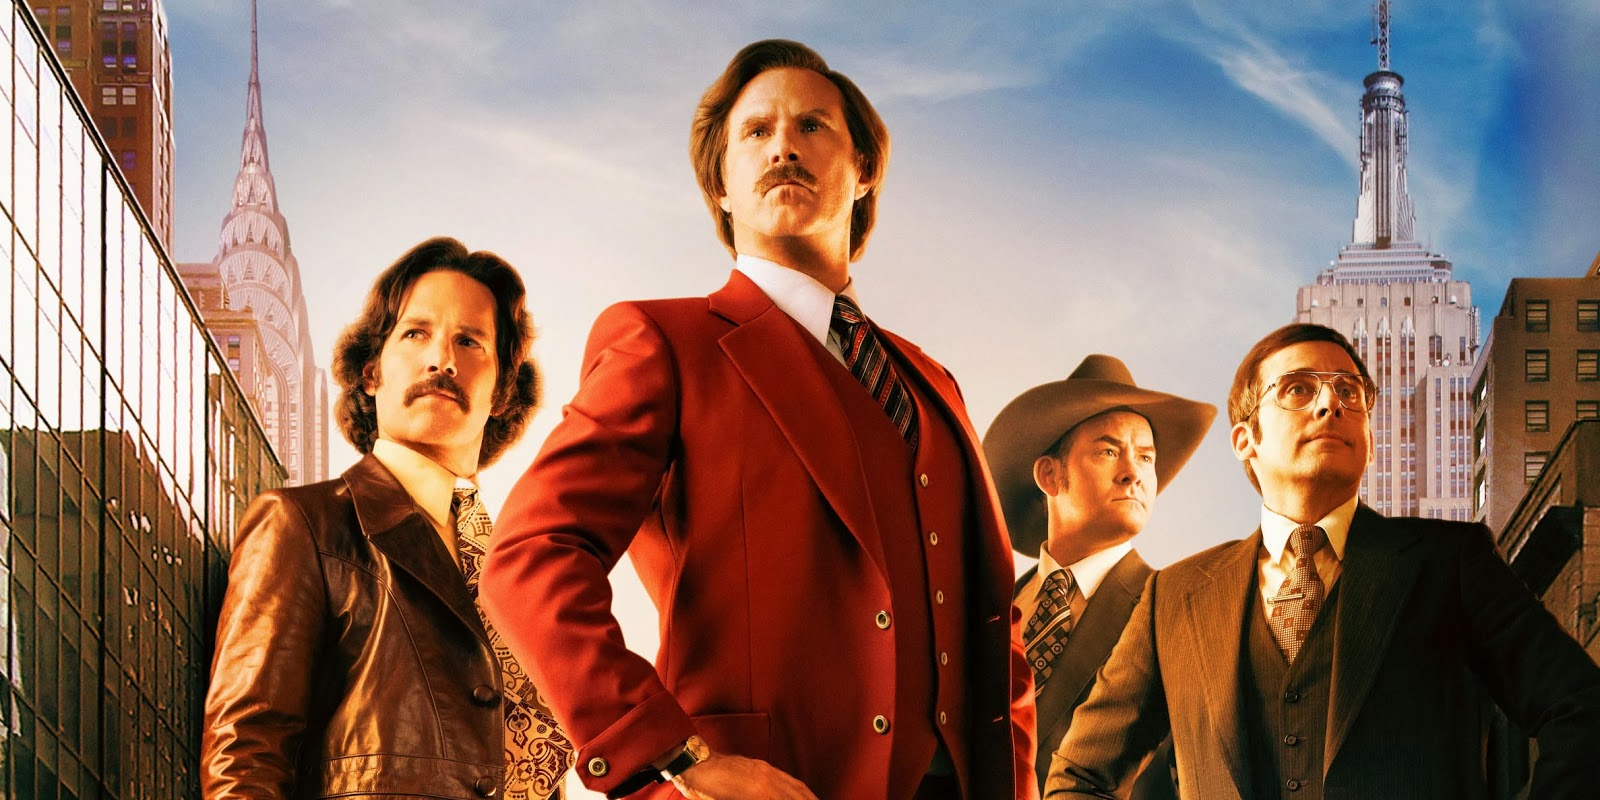 Download Anchorman : Ron Burgundy And Brick Tamland Wallpaper For 1600x800